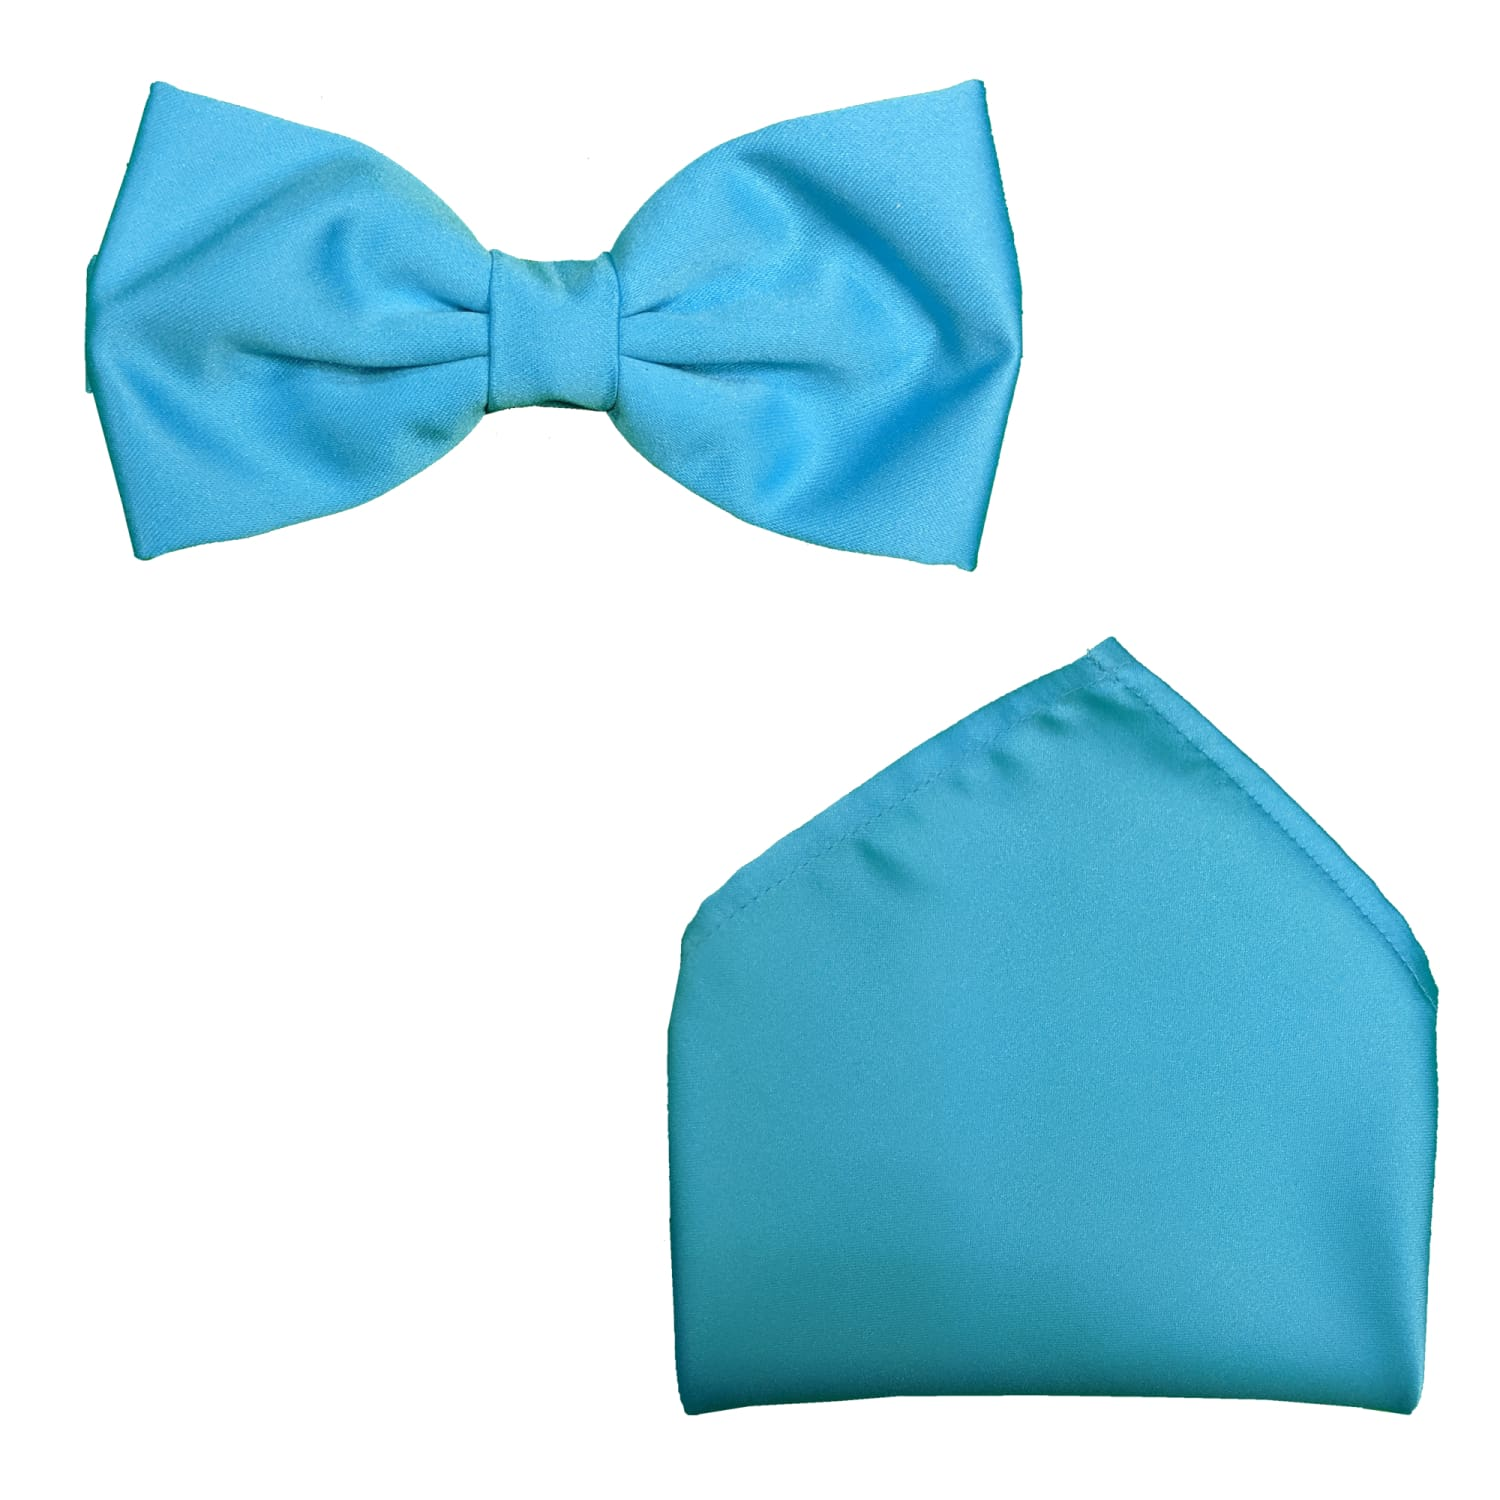 Folkespeare Bow Tie & Pocket Square Set - BK0030 - Turquoise 1